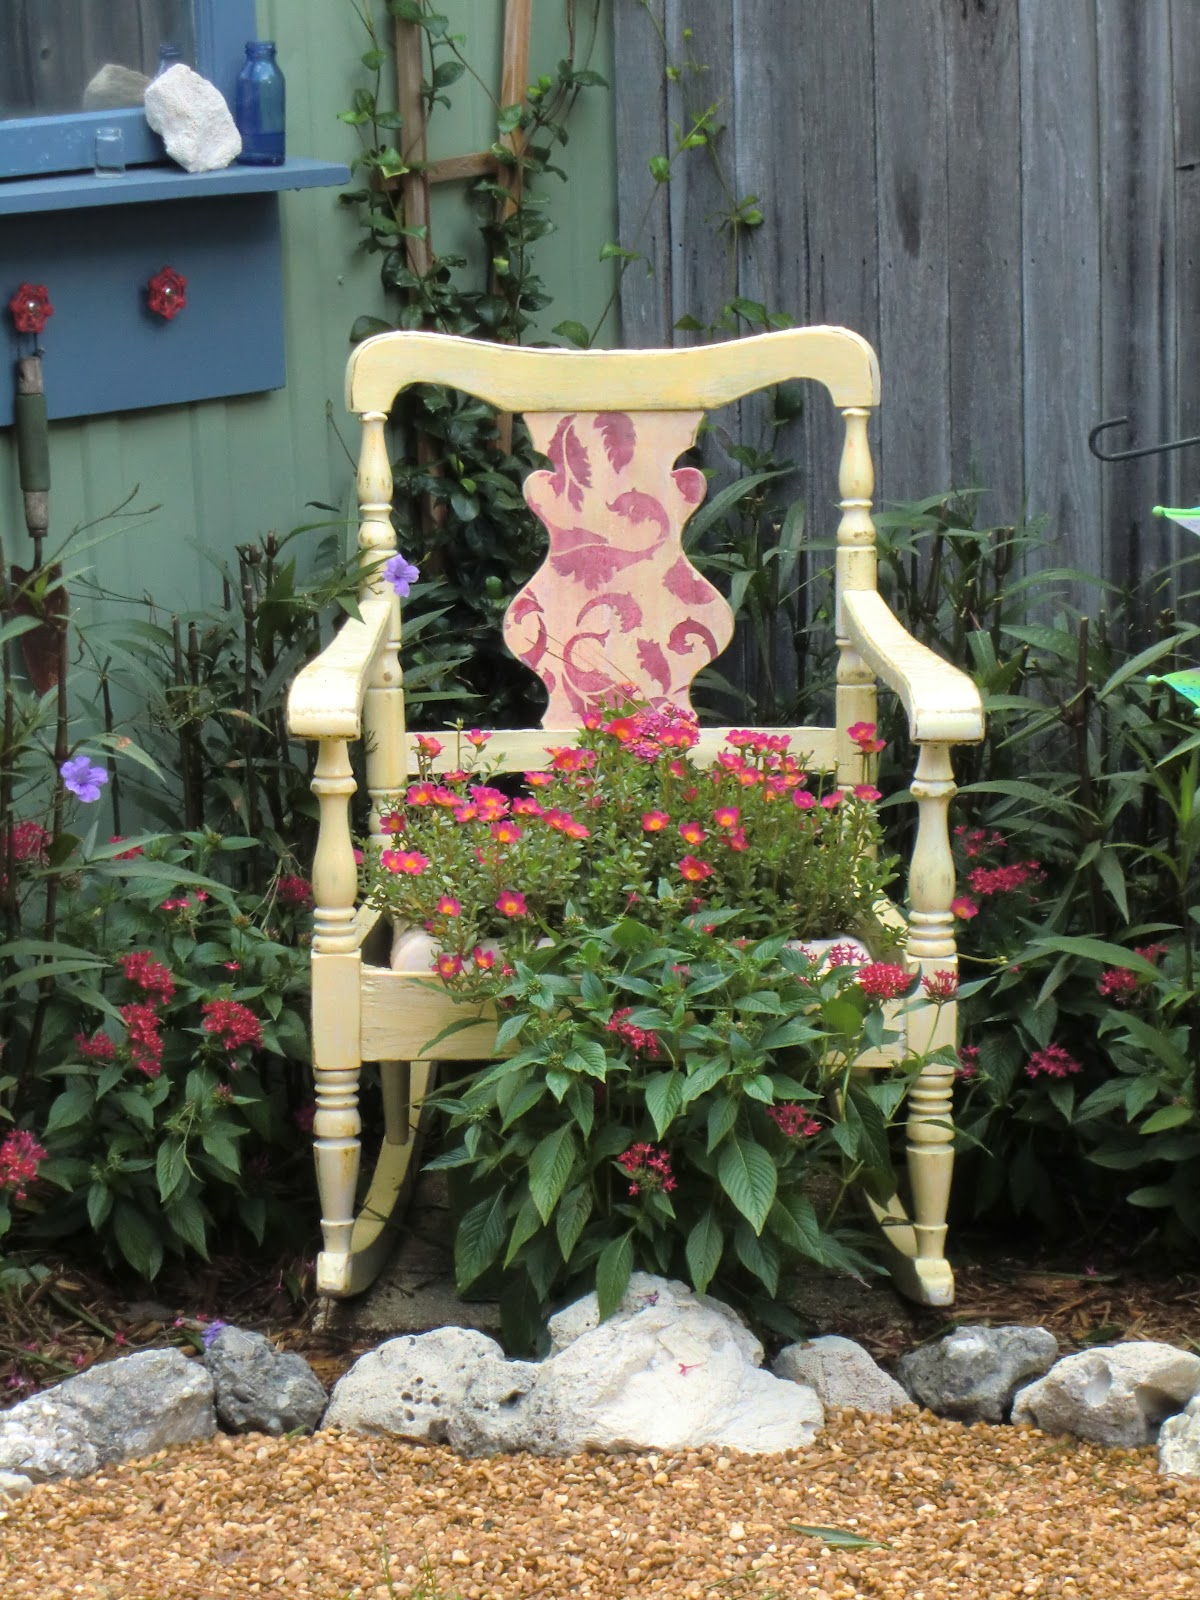 After Rocking Chair Planter & Shabby Glam: Rocking Chair Planter - Curbside Find!